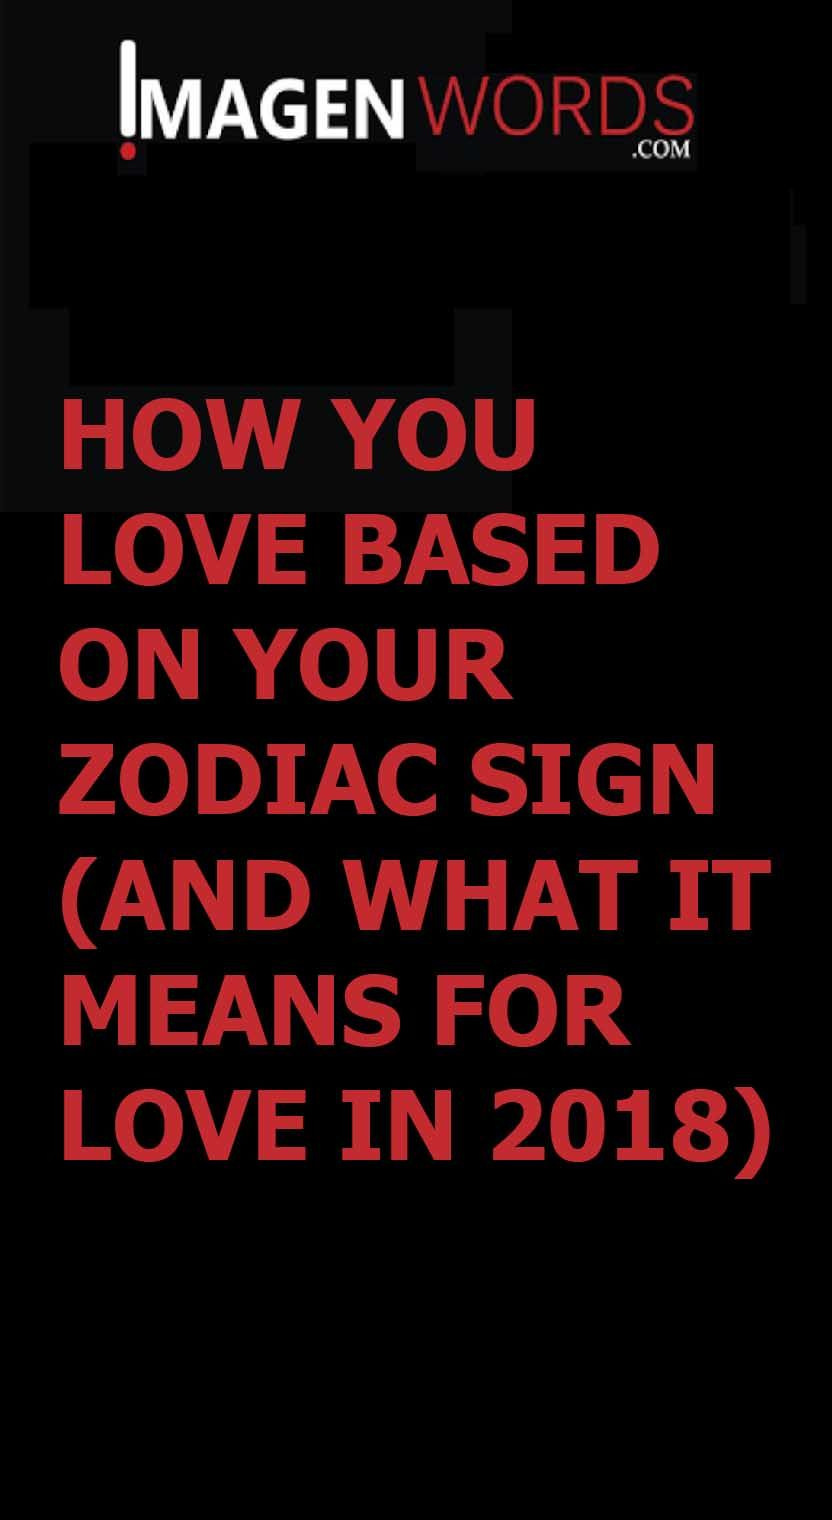 What are you friend in 5 words, depending on the sign of the zodiac